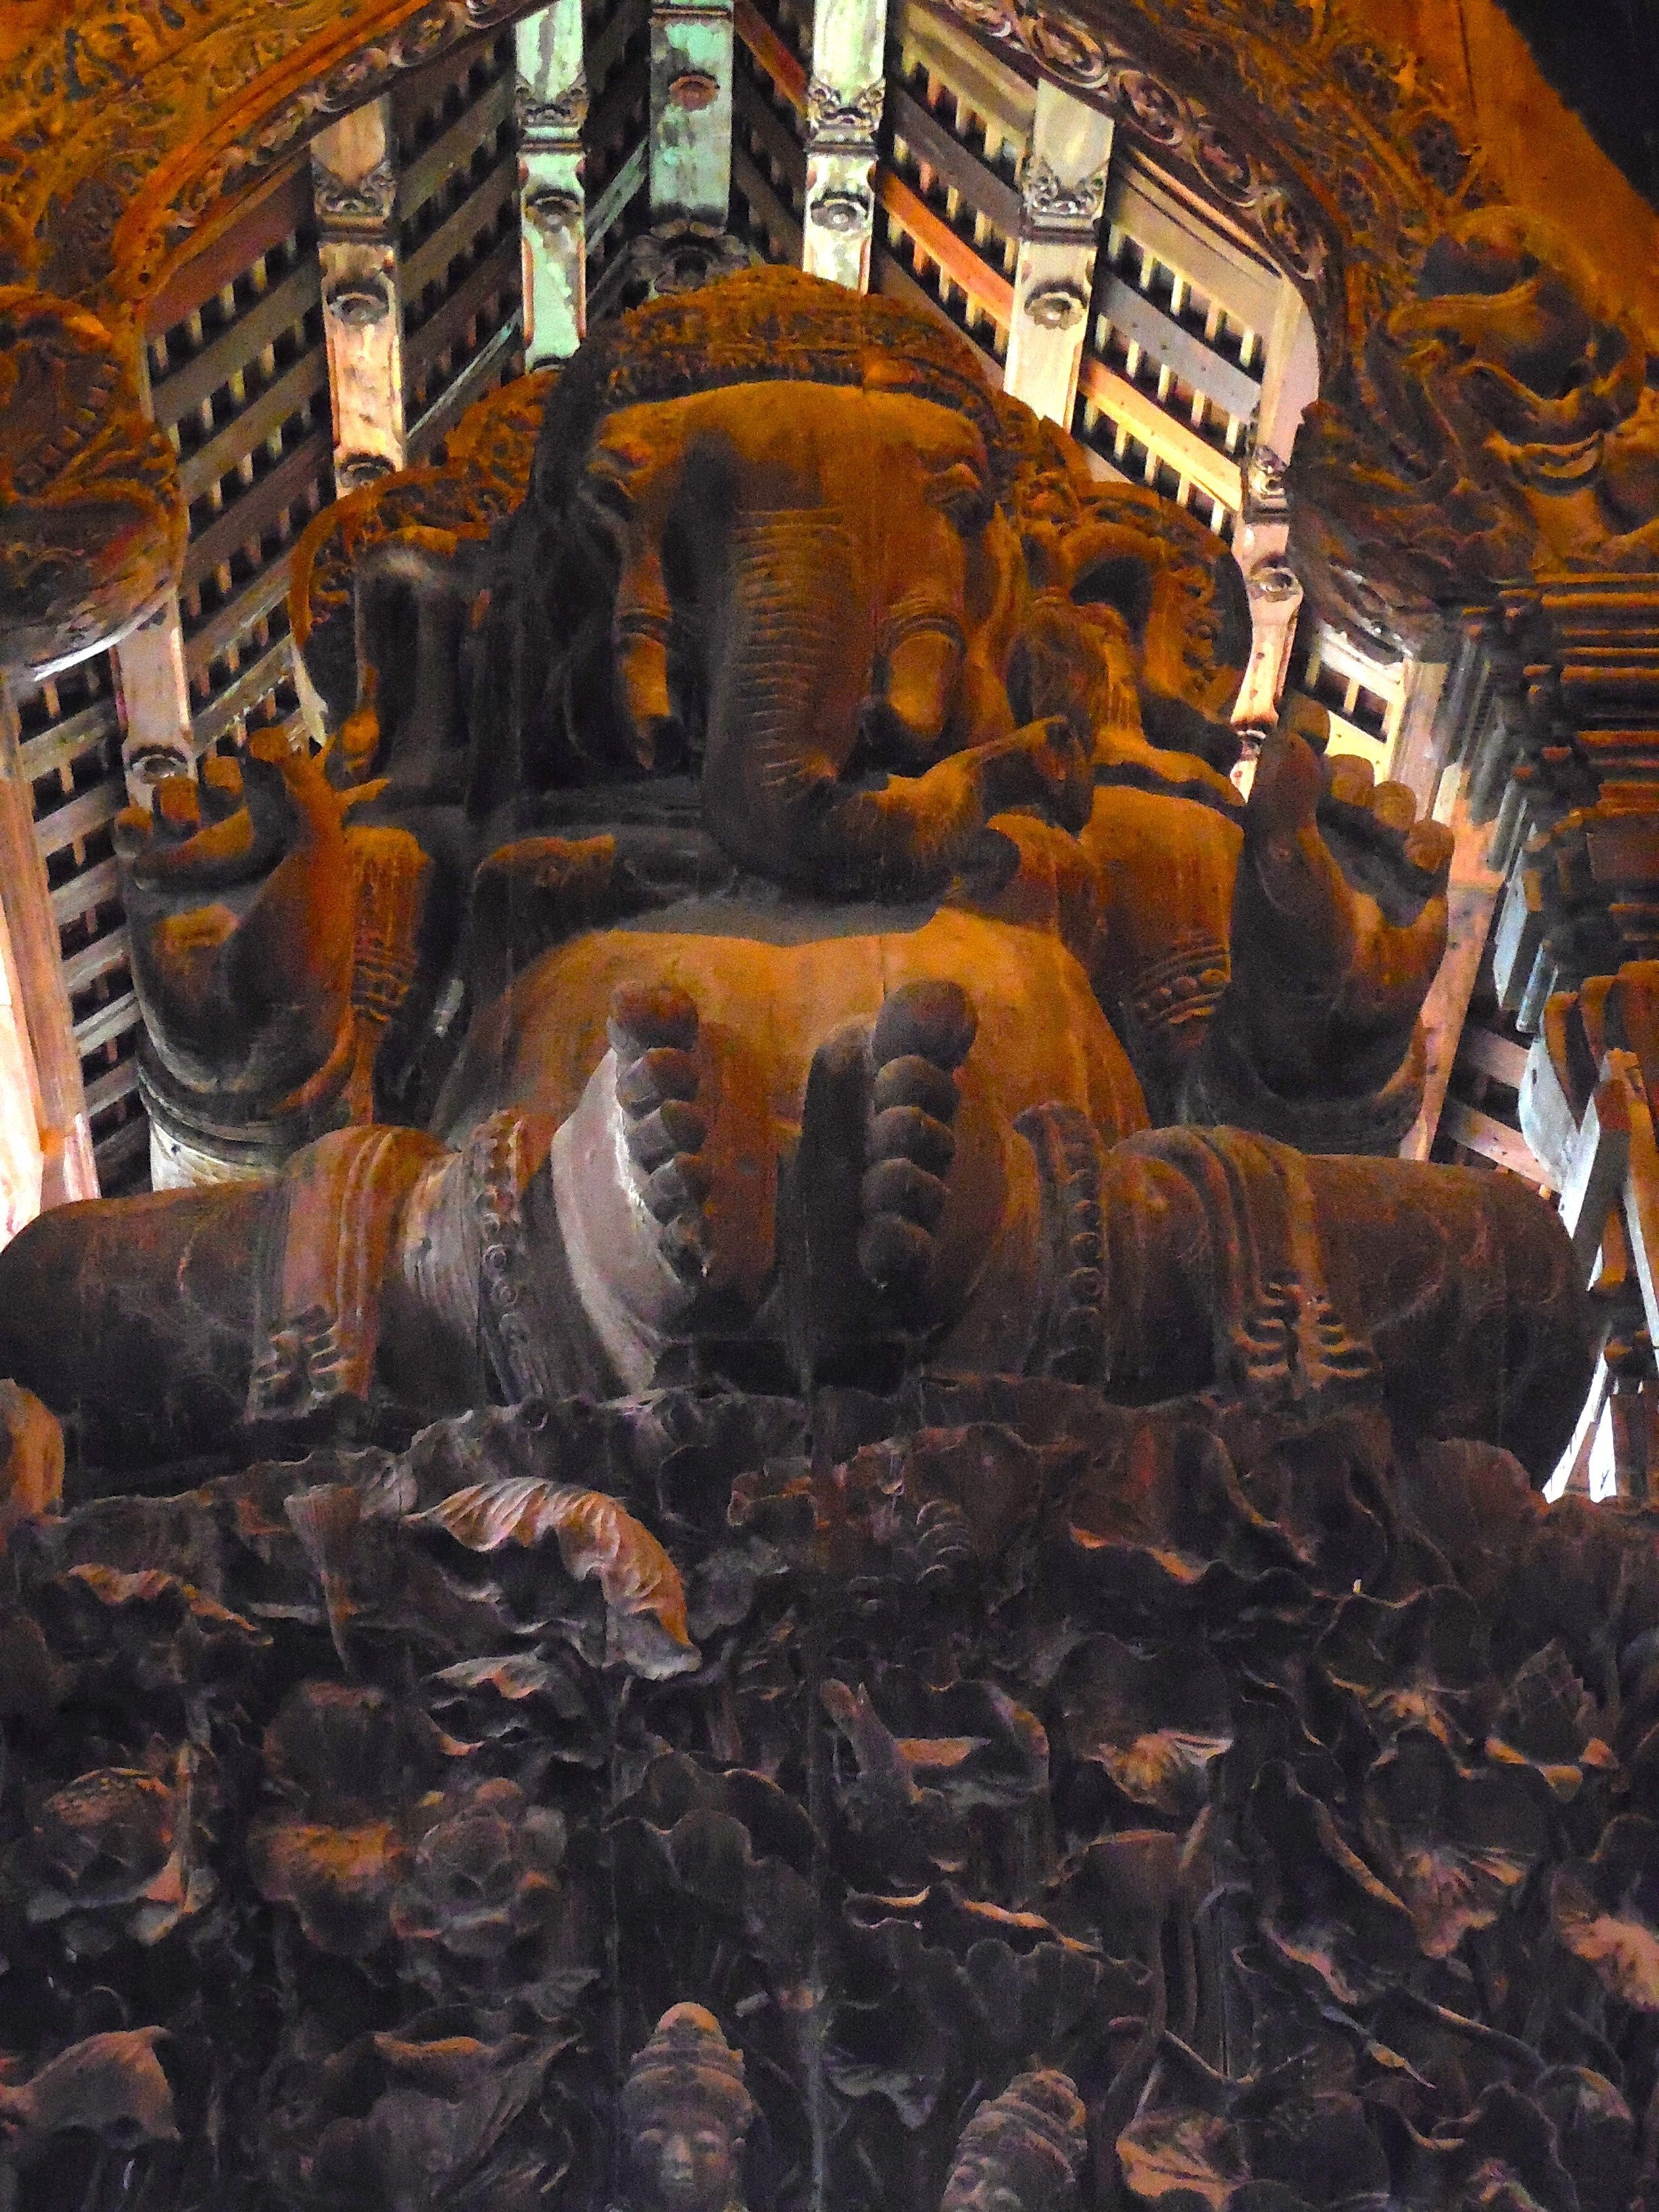 Ganesh wood sculpture inside Sanctuary of Truth Temple, Pattaya ...